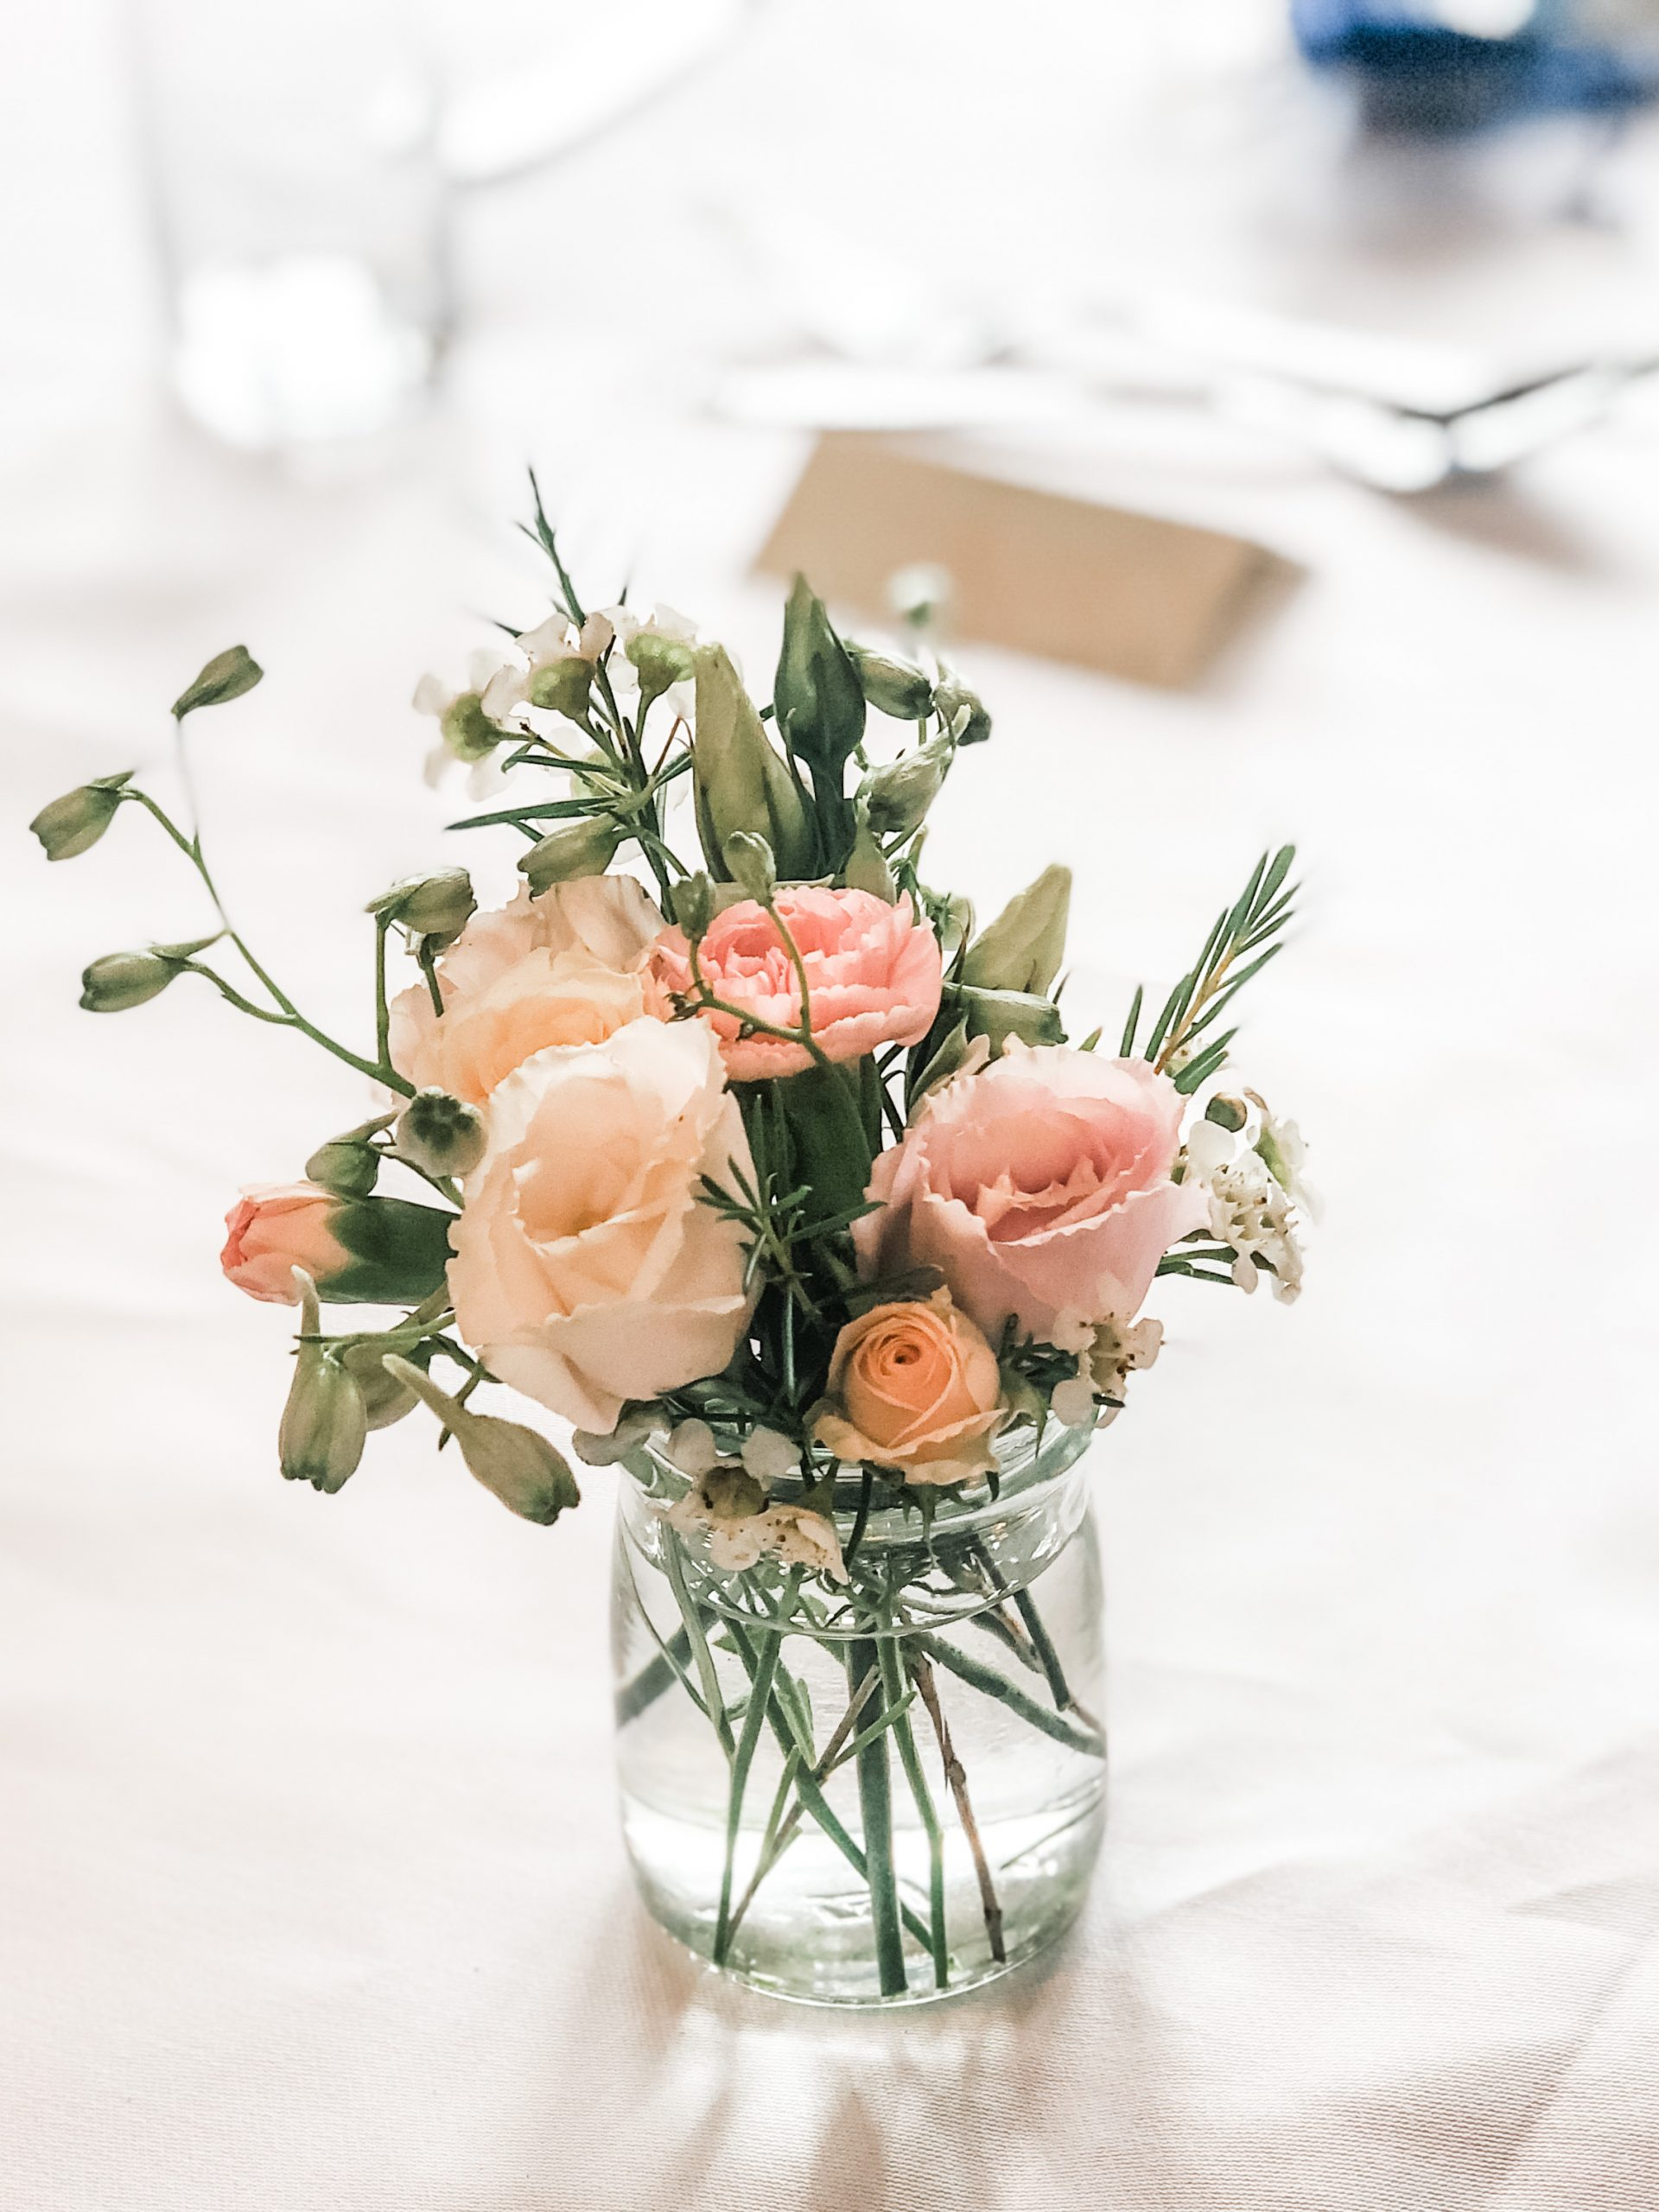 small delicate posy arrangement for wedding table